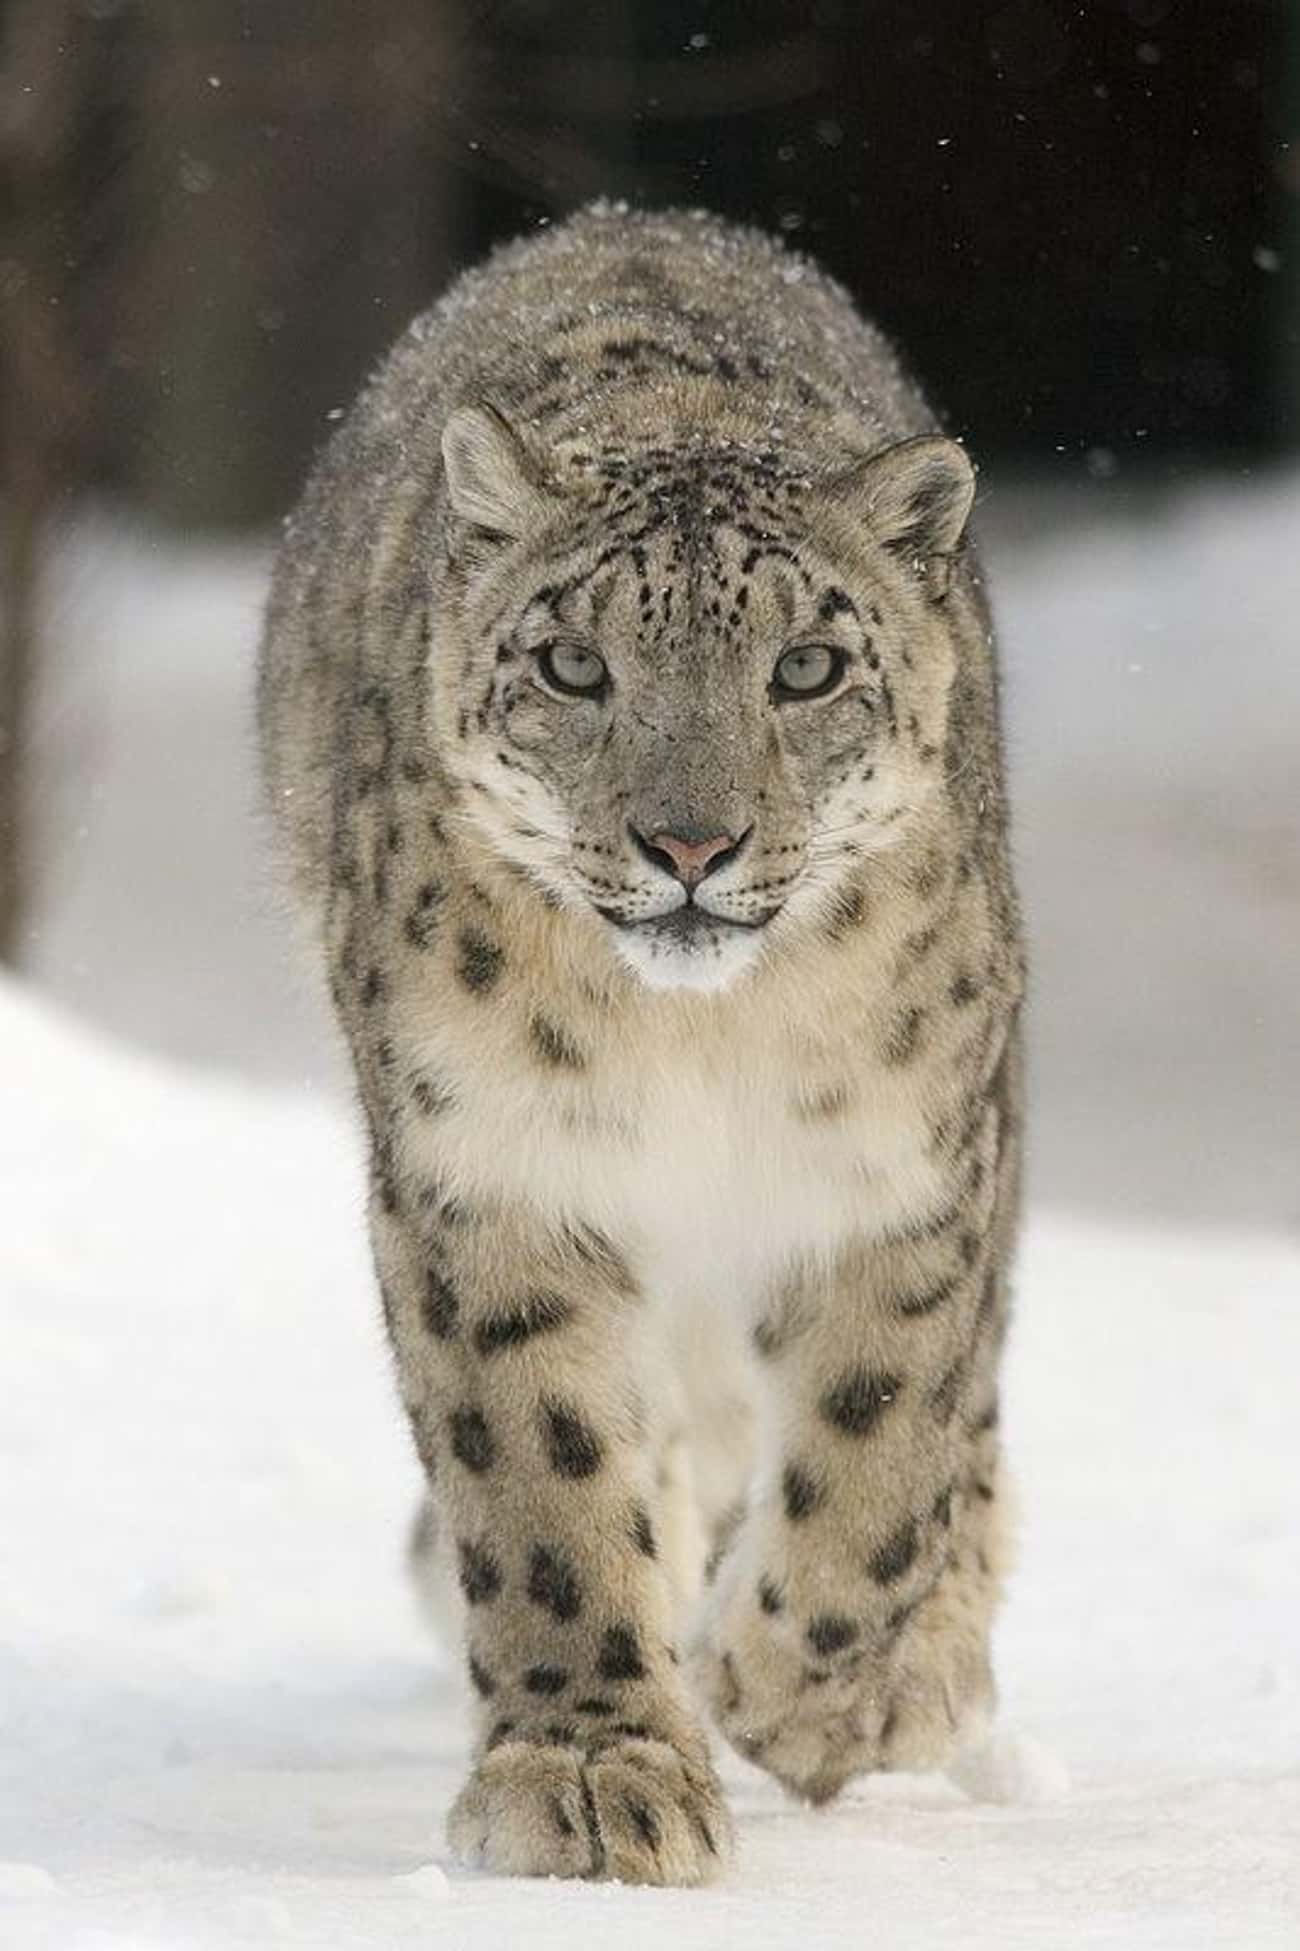 Snow Leopard is listed (or ranked) 2 on the list The World's Most Beautiful Animals